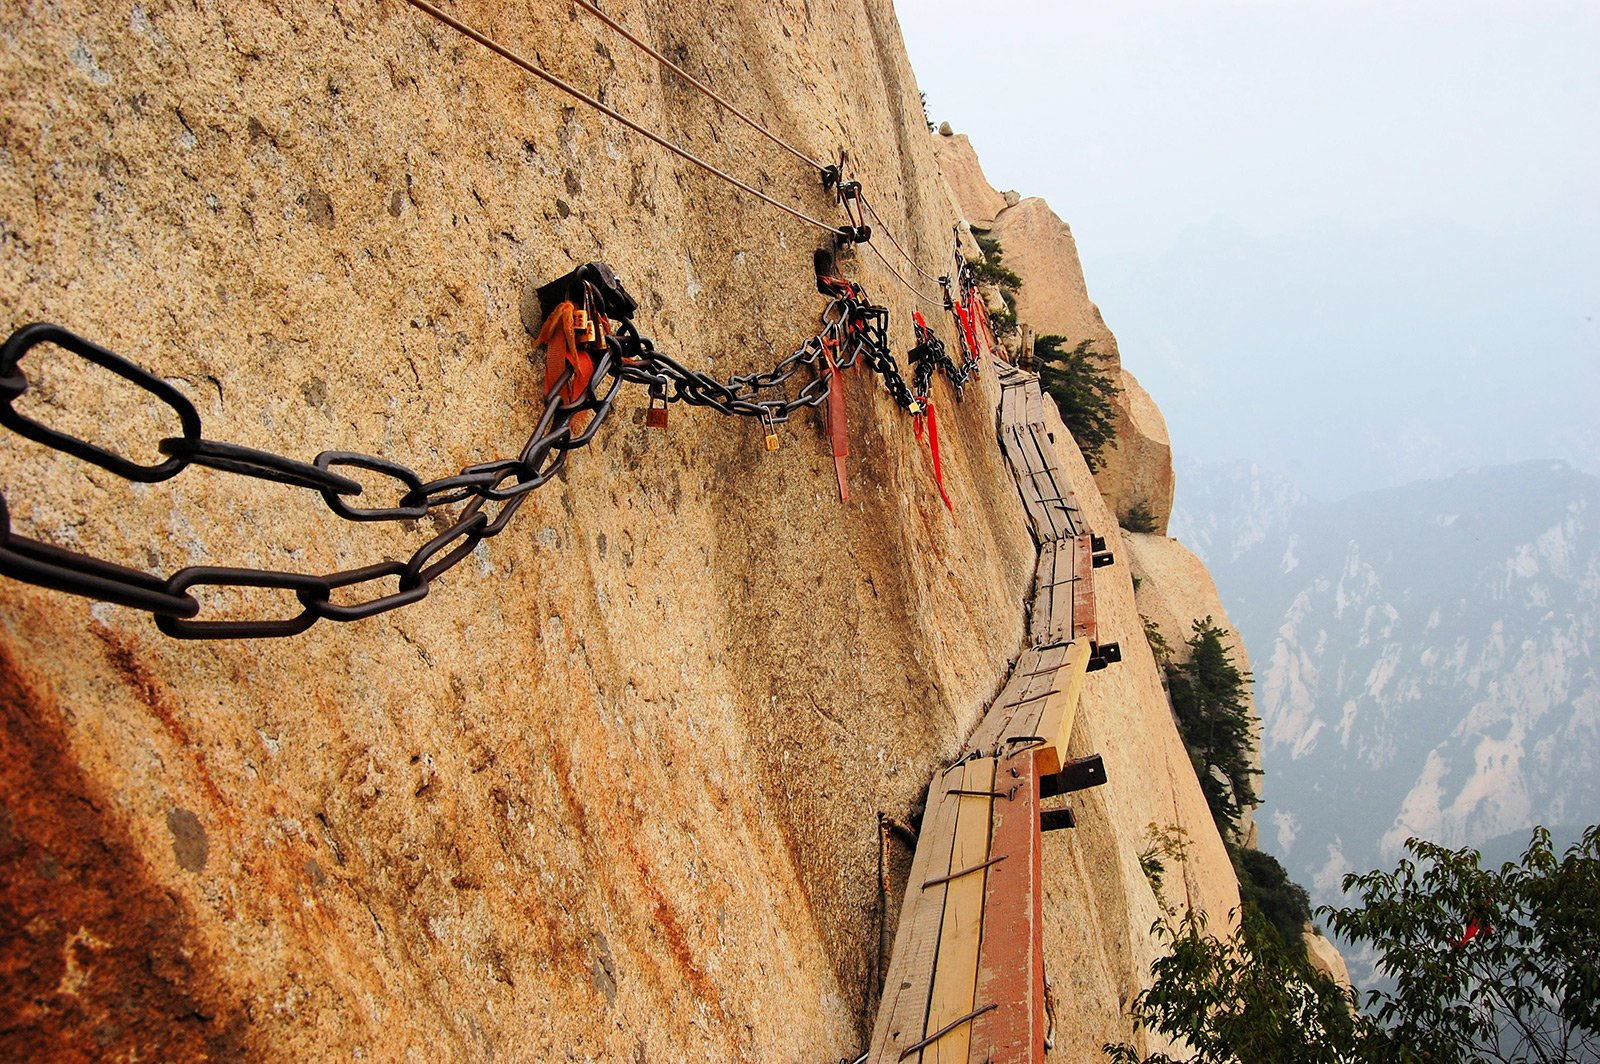 Weinan China  City pictures : Walk the Trail of Death Mount Hua in Weinan : reviews, cost and ...